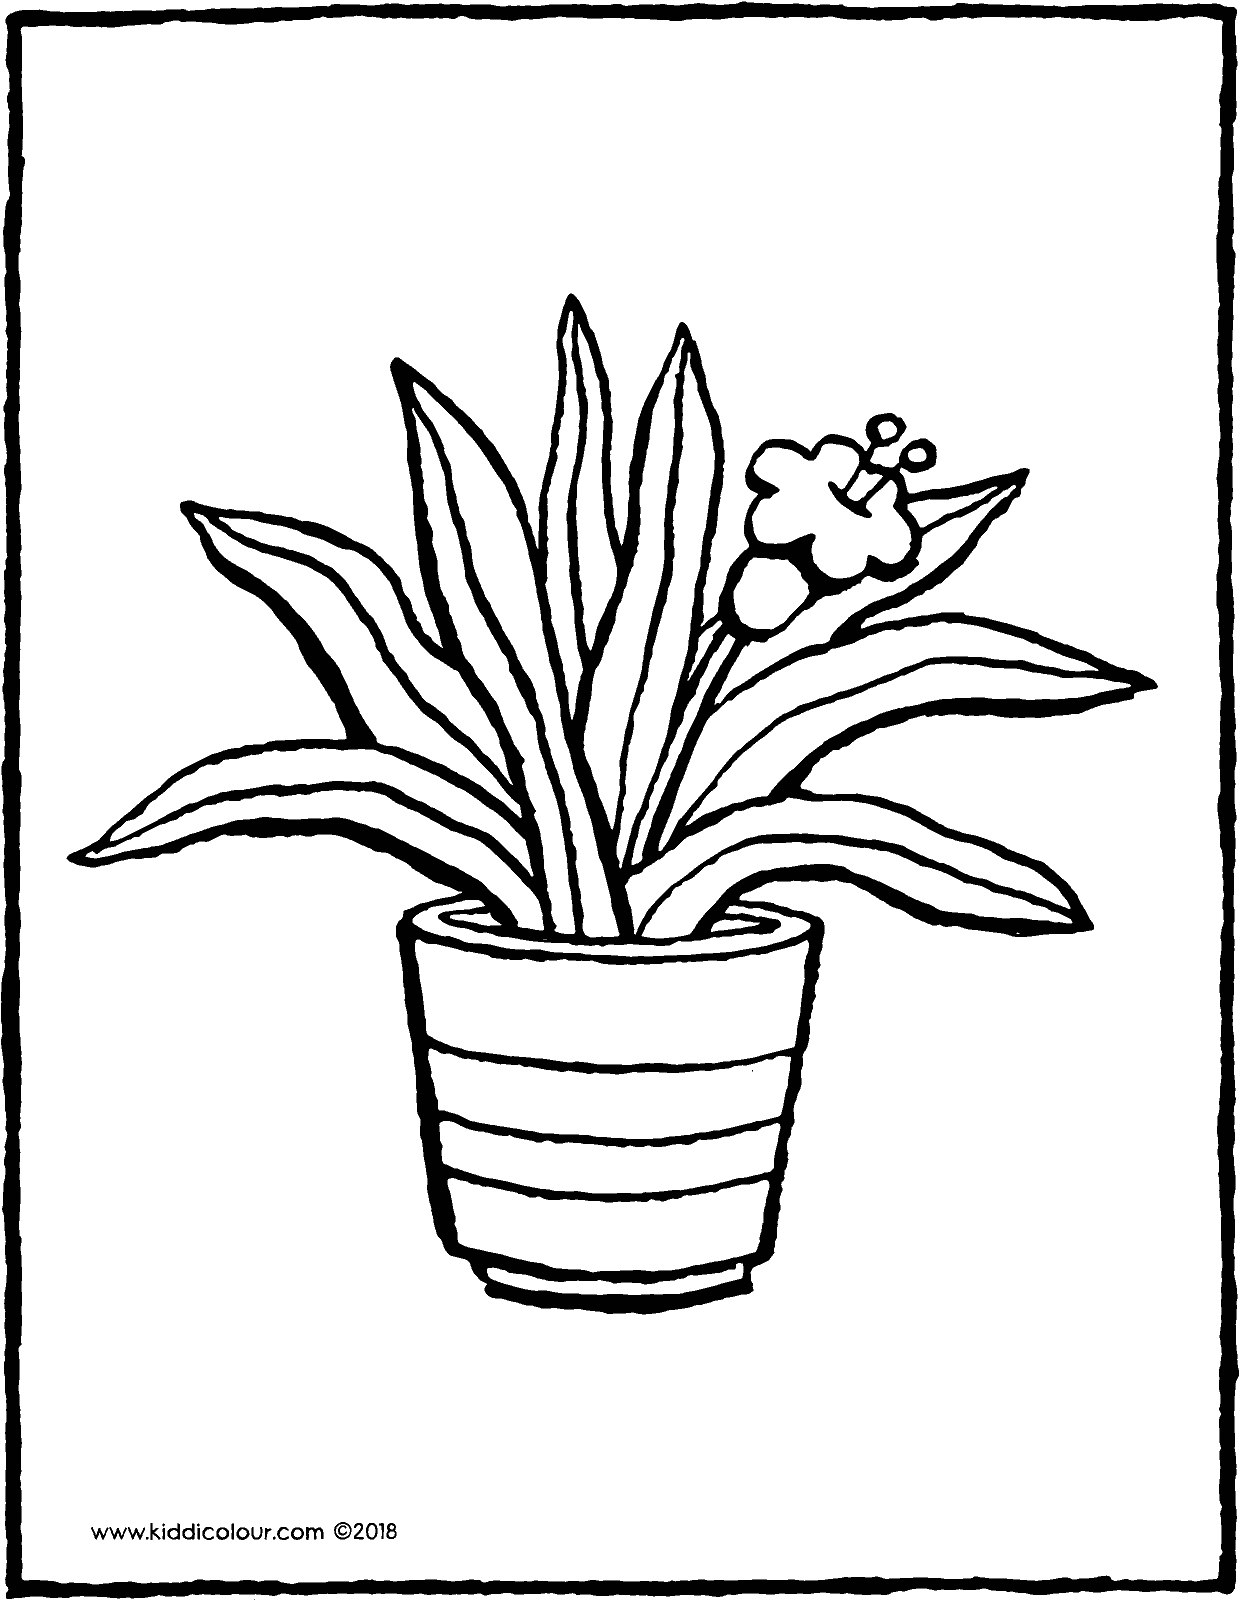 houseplant colouring page drawing picture 01V